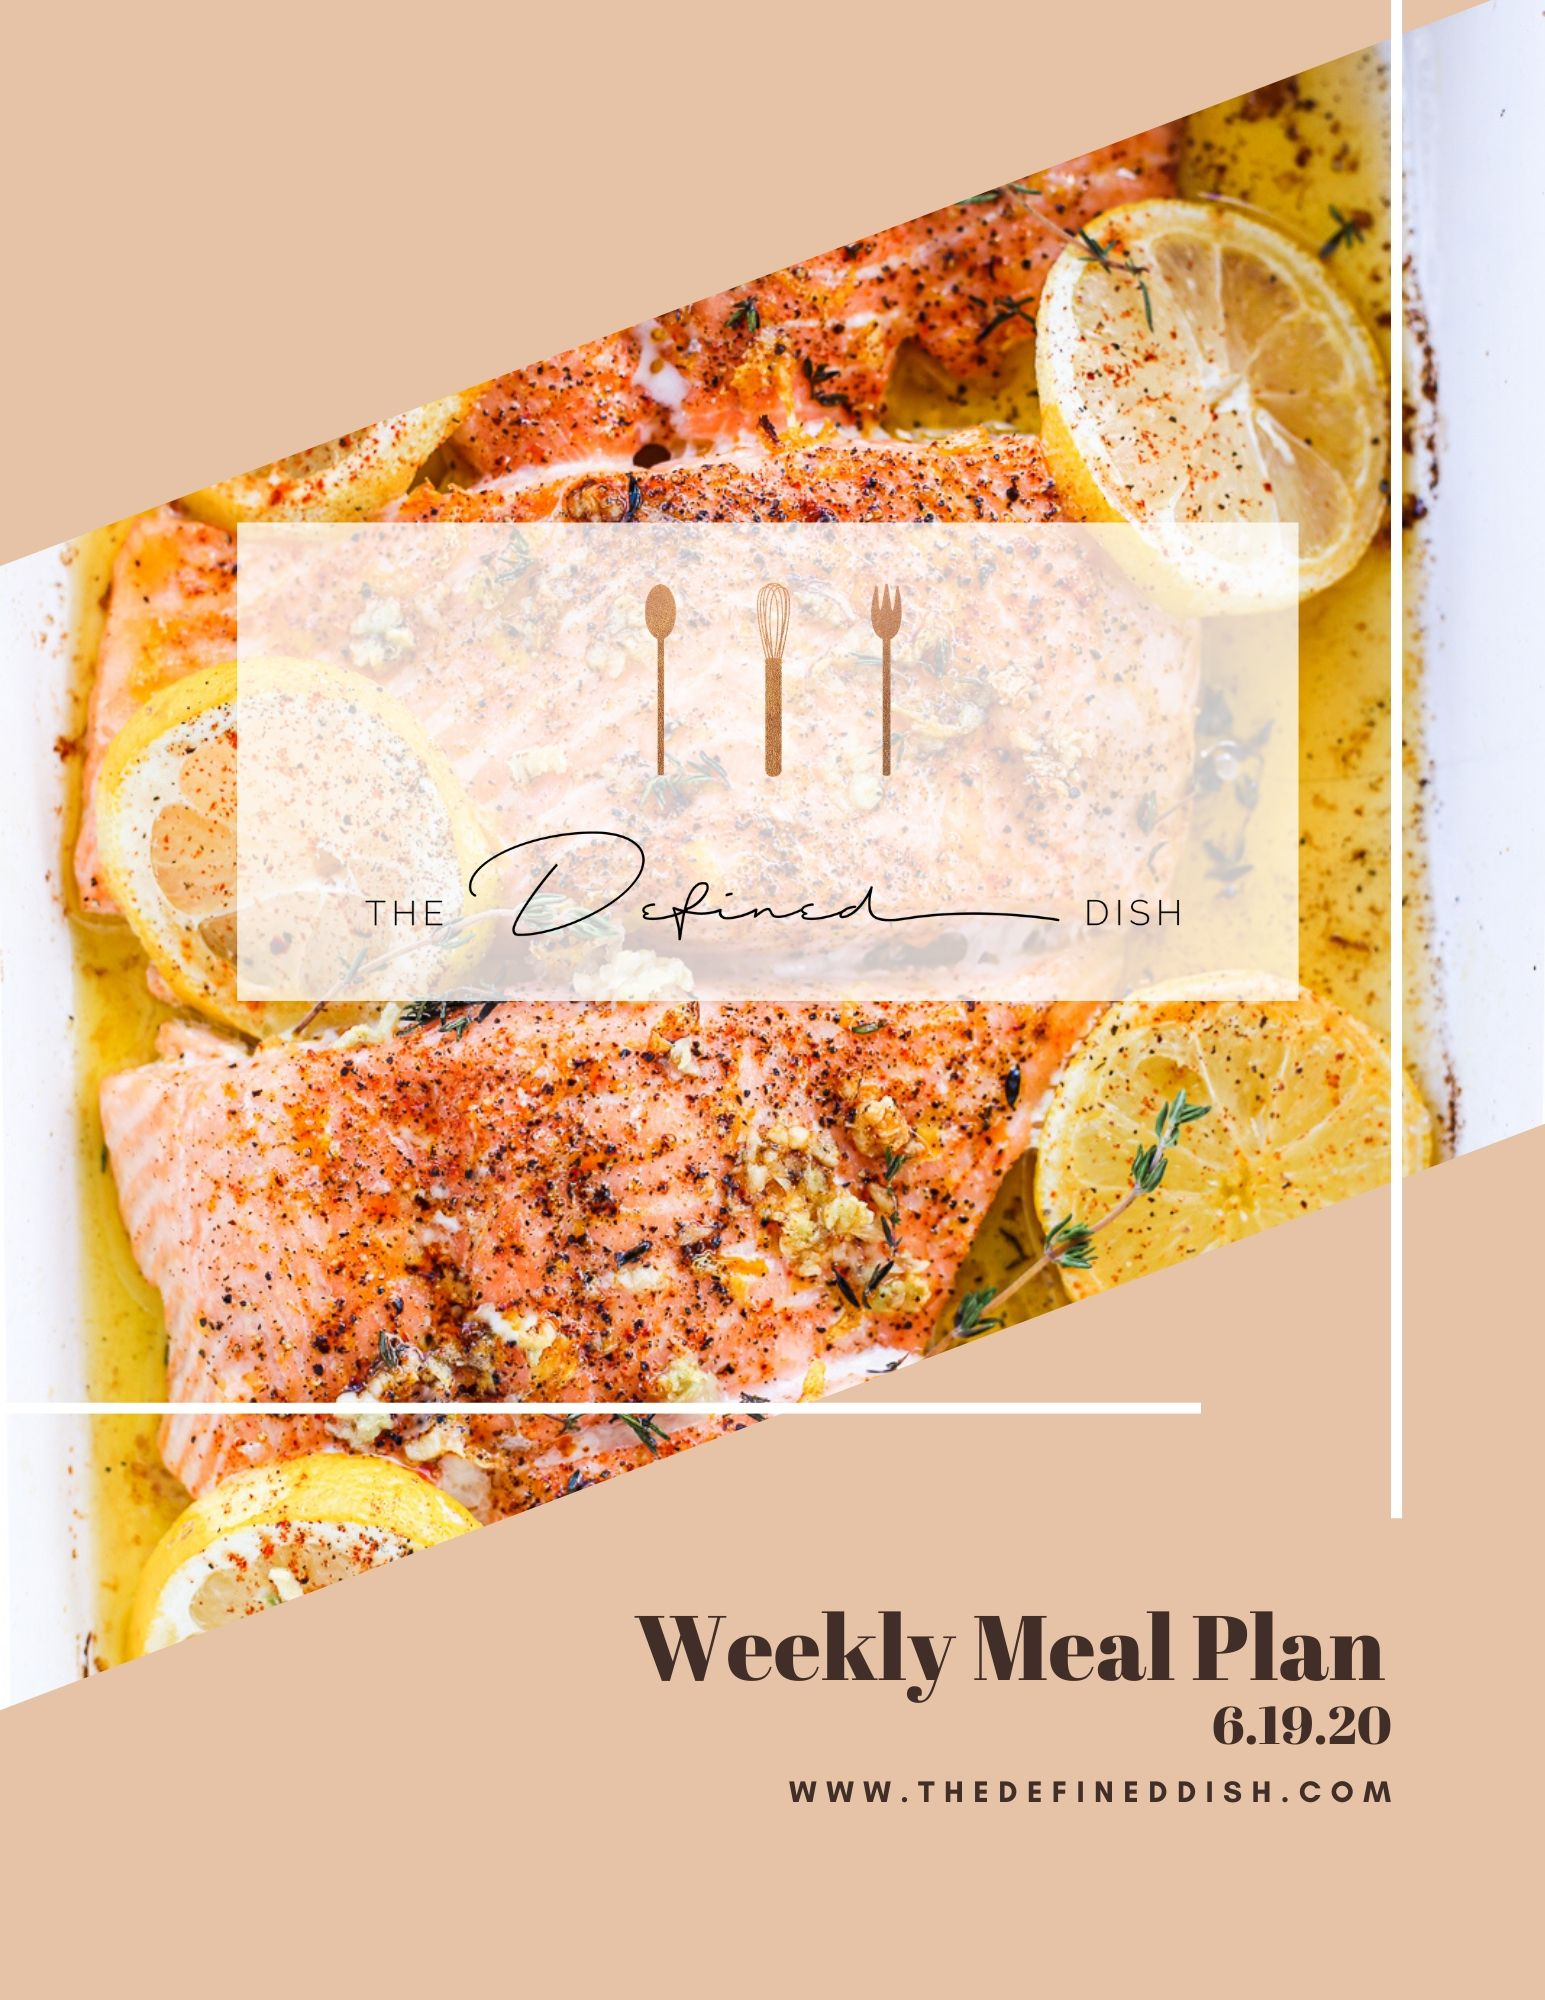 Weekly Meal Plan 6.19.20